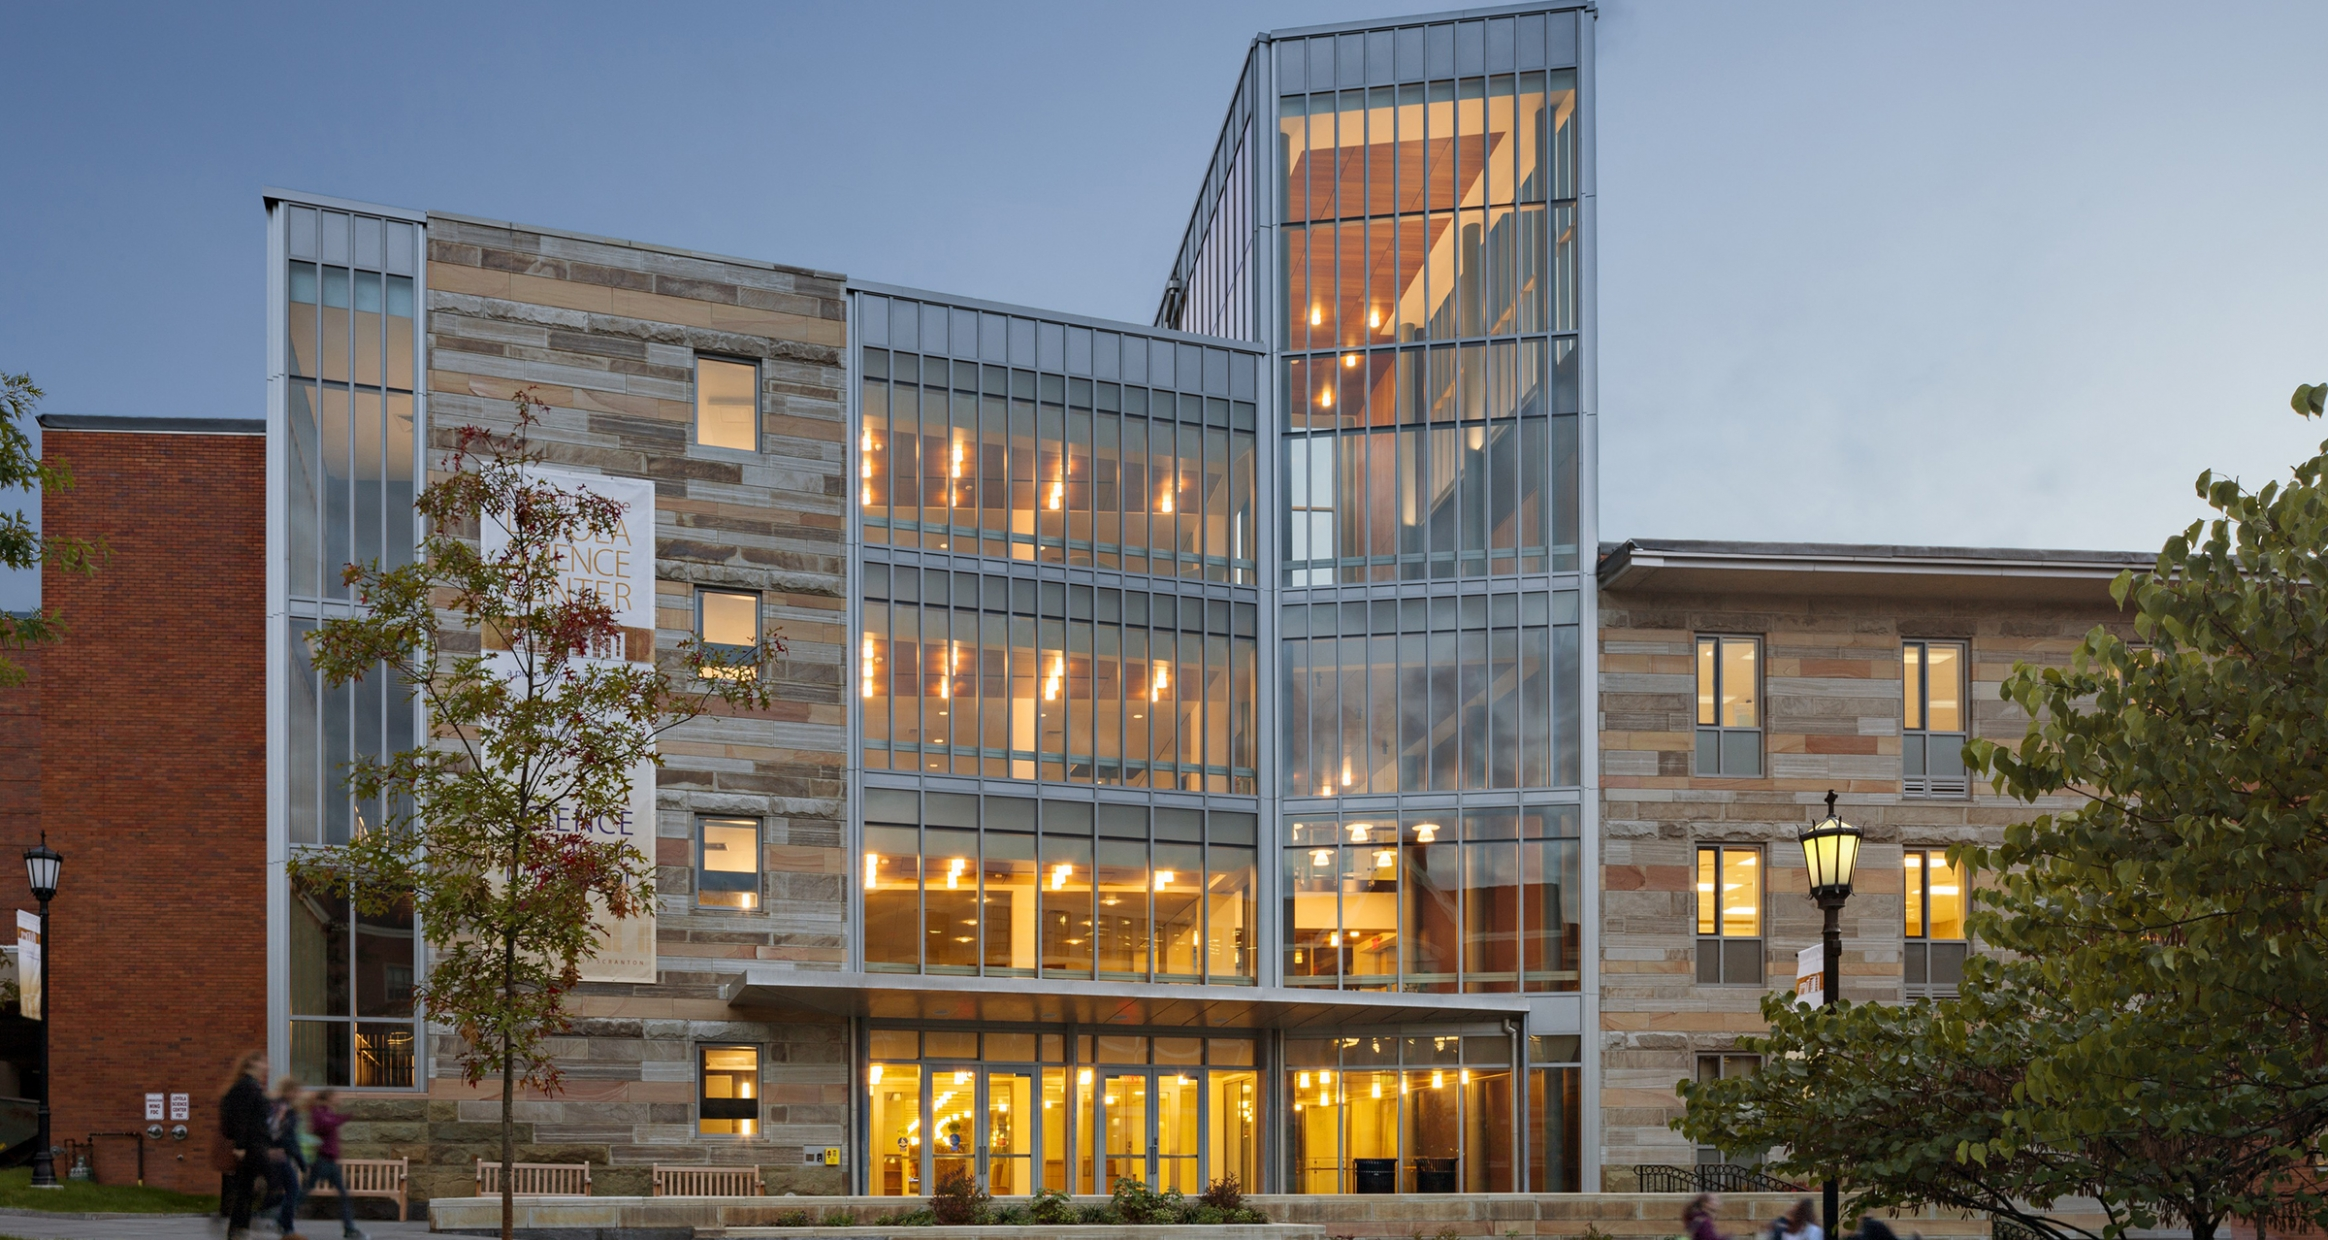 Exterior facade of Loyola Science Center at dusk